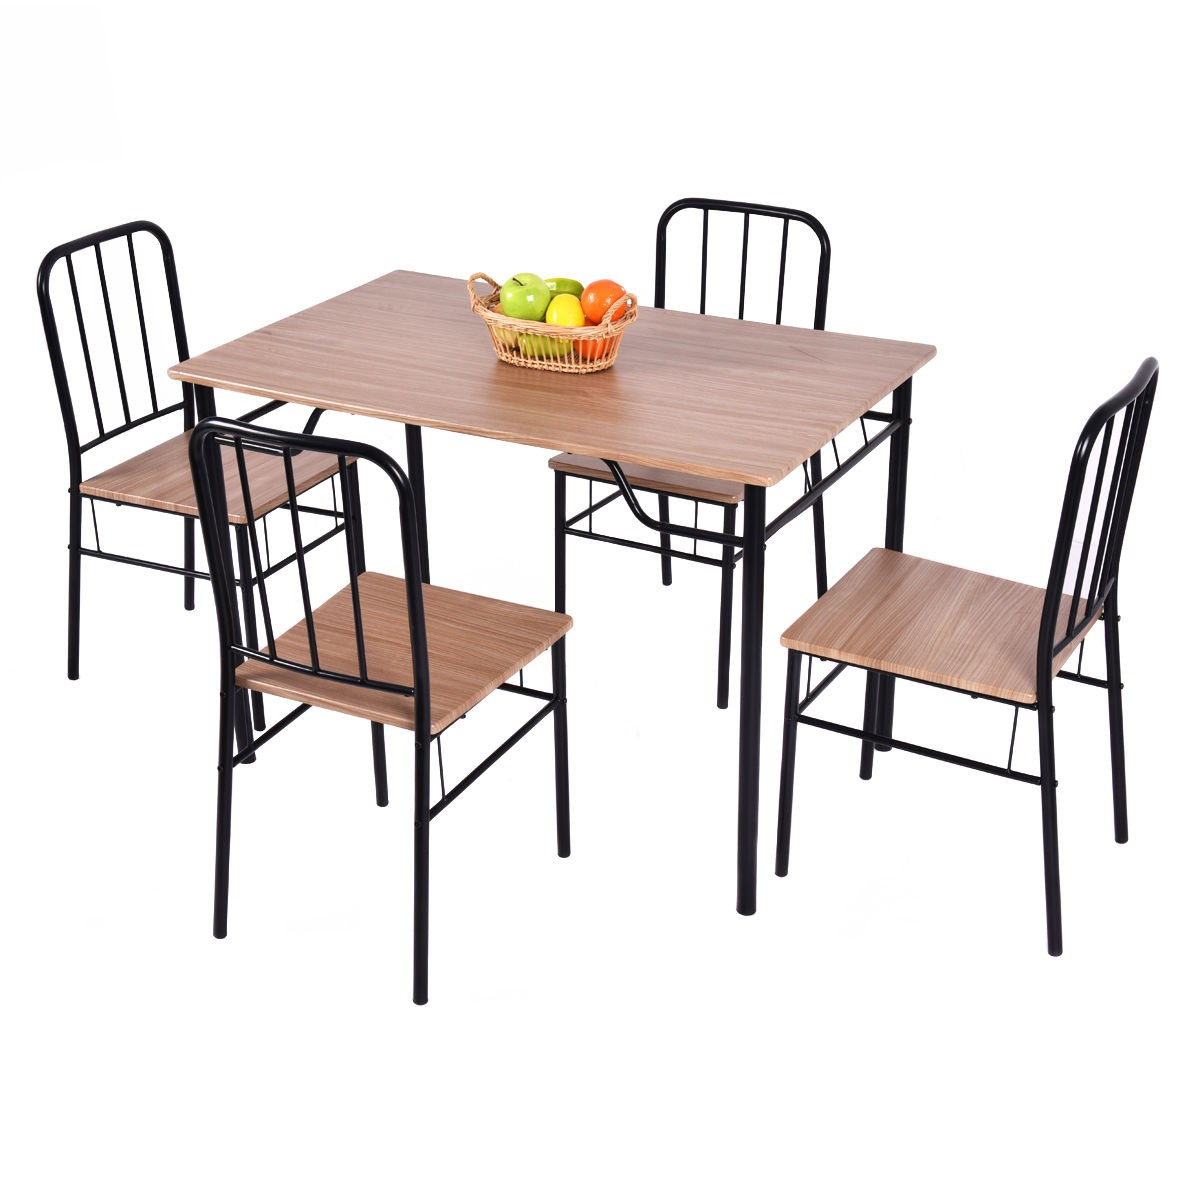 5 piece dining set table and 4 chairs with 2 slide out for 4 piece dining table